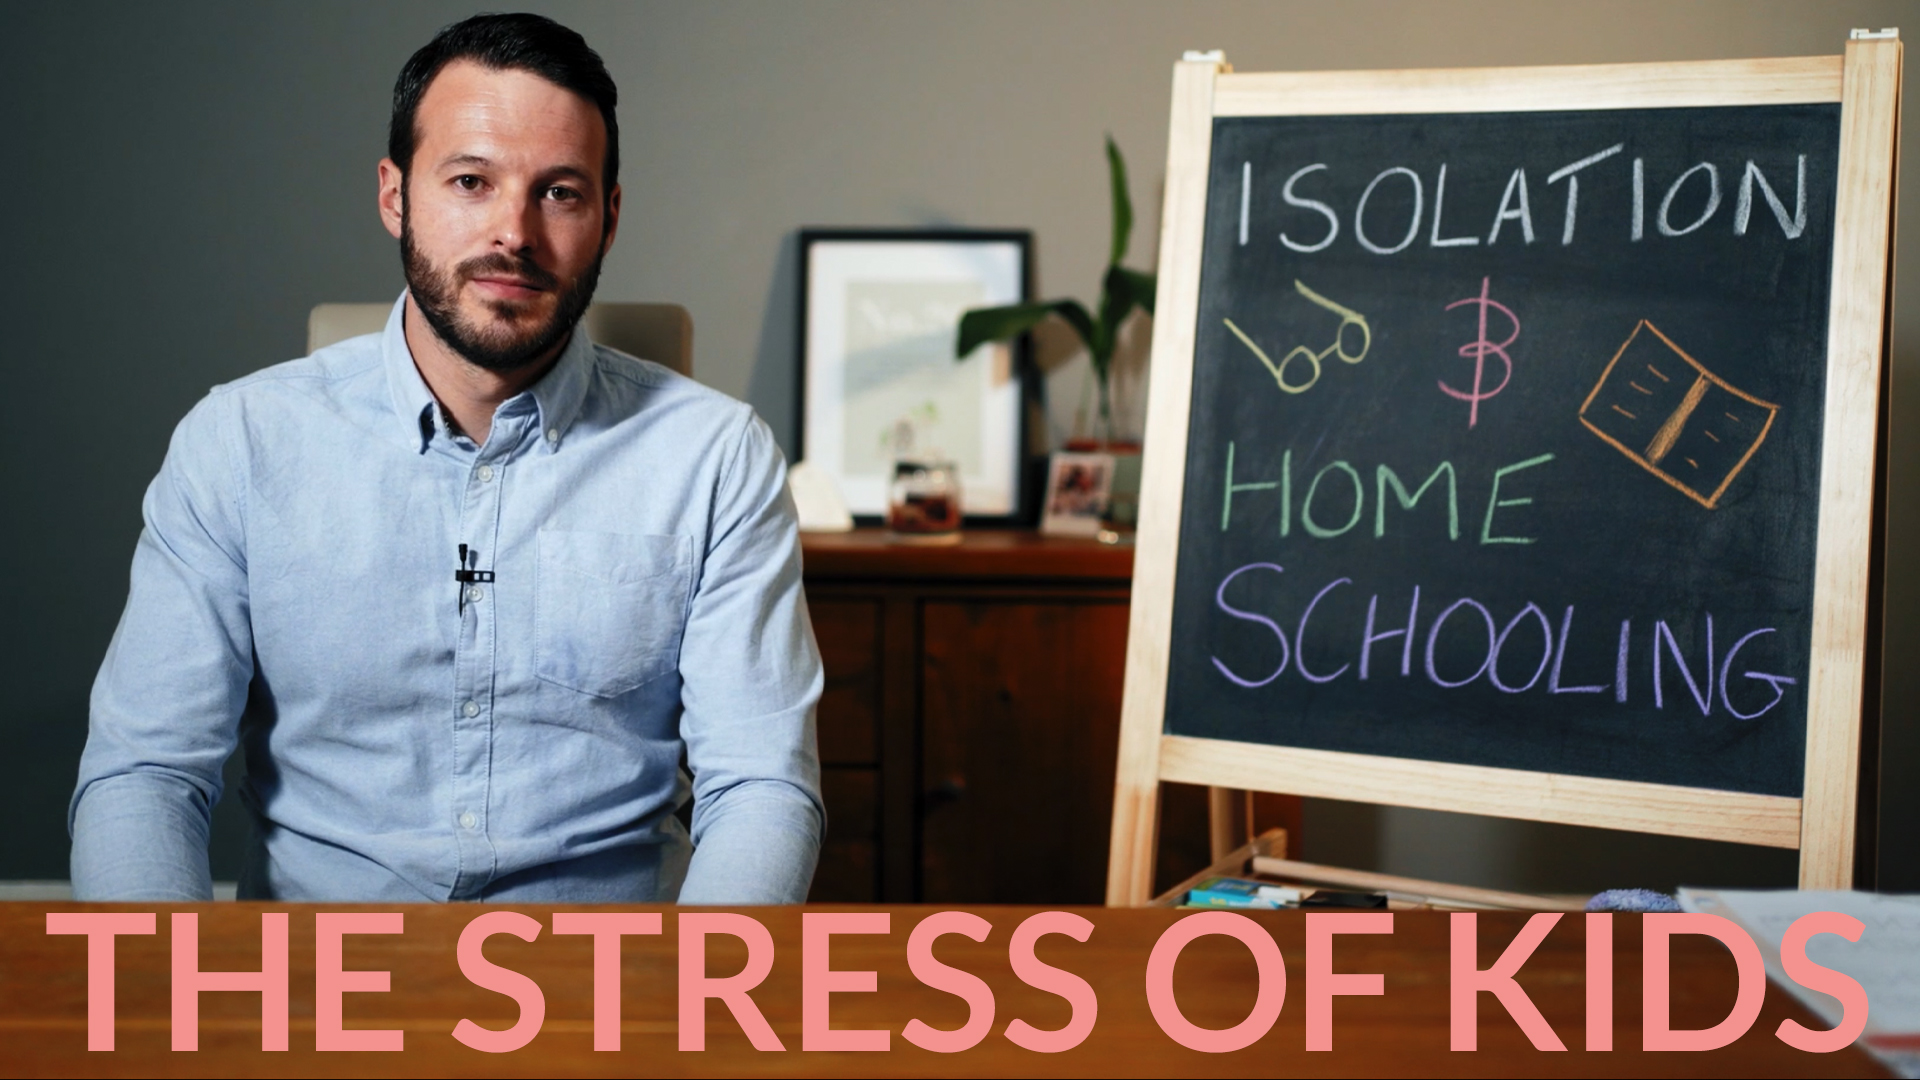 Day 4 - the stress of kids